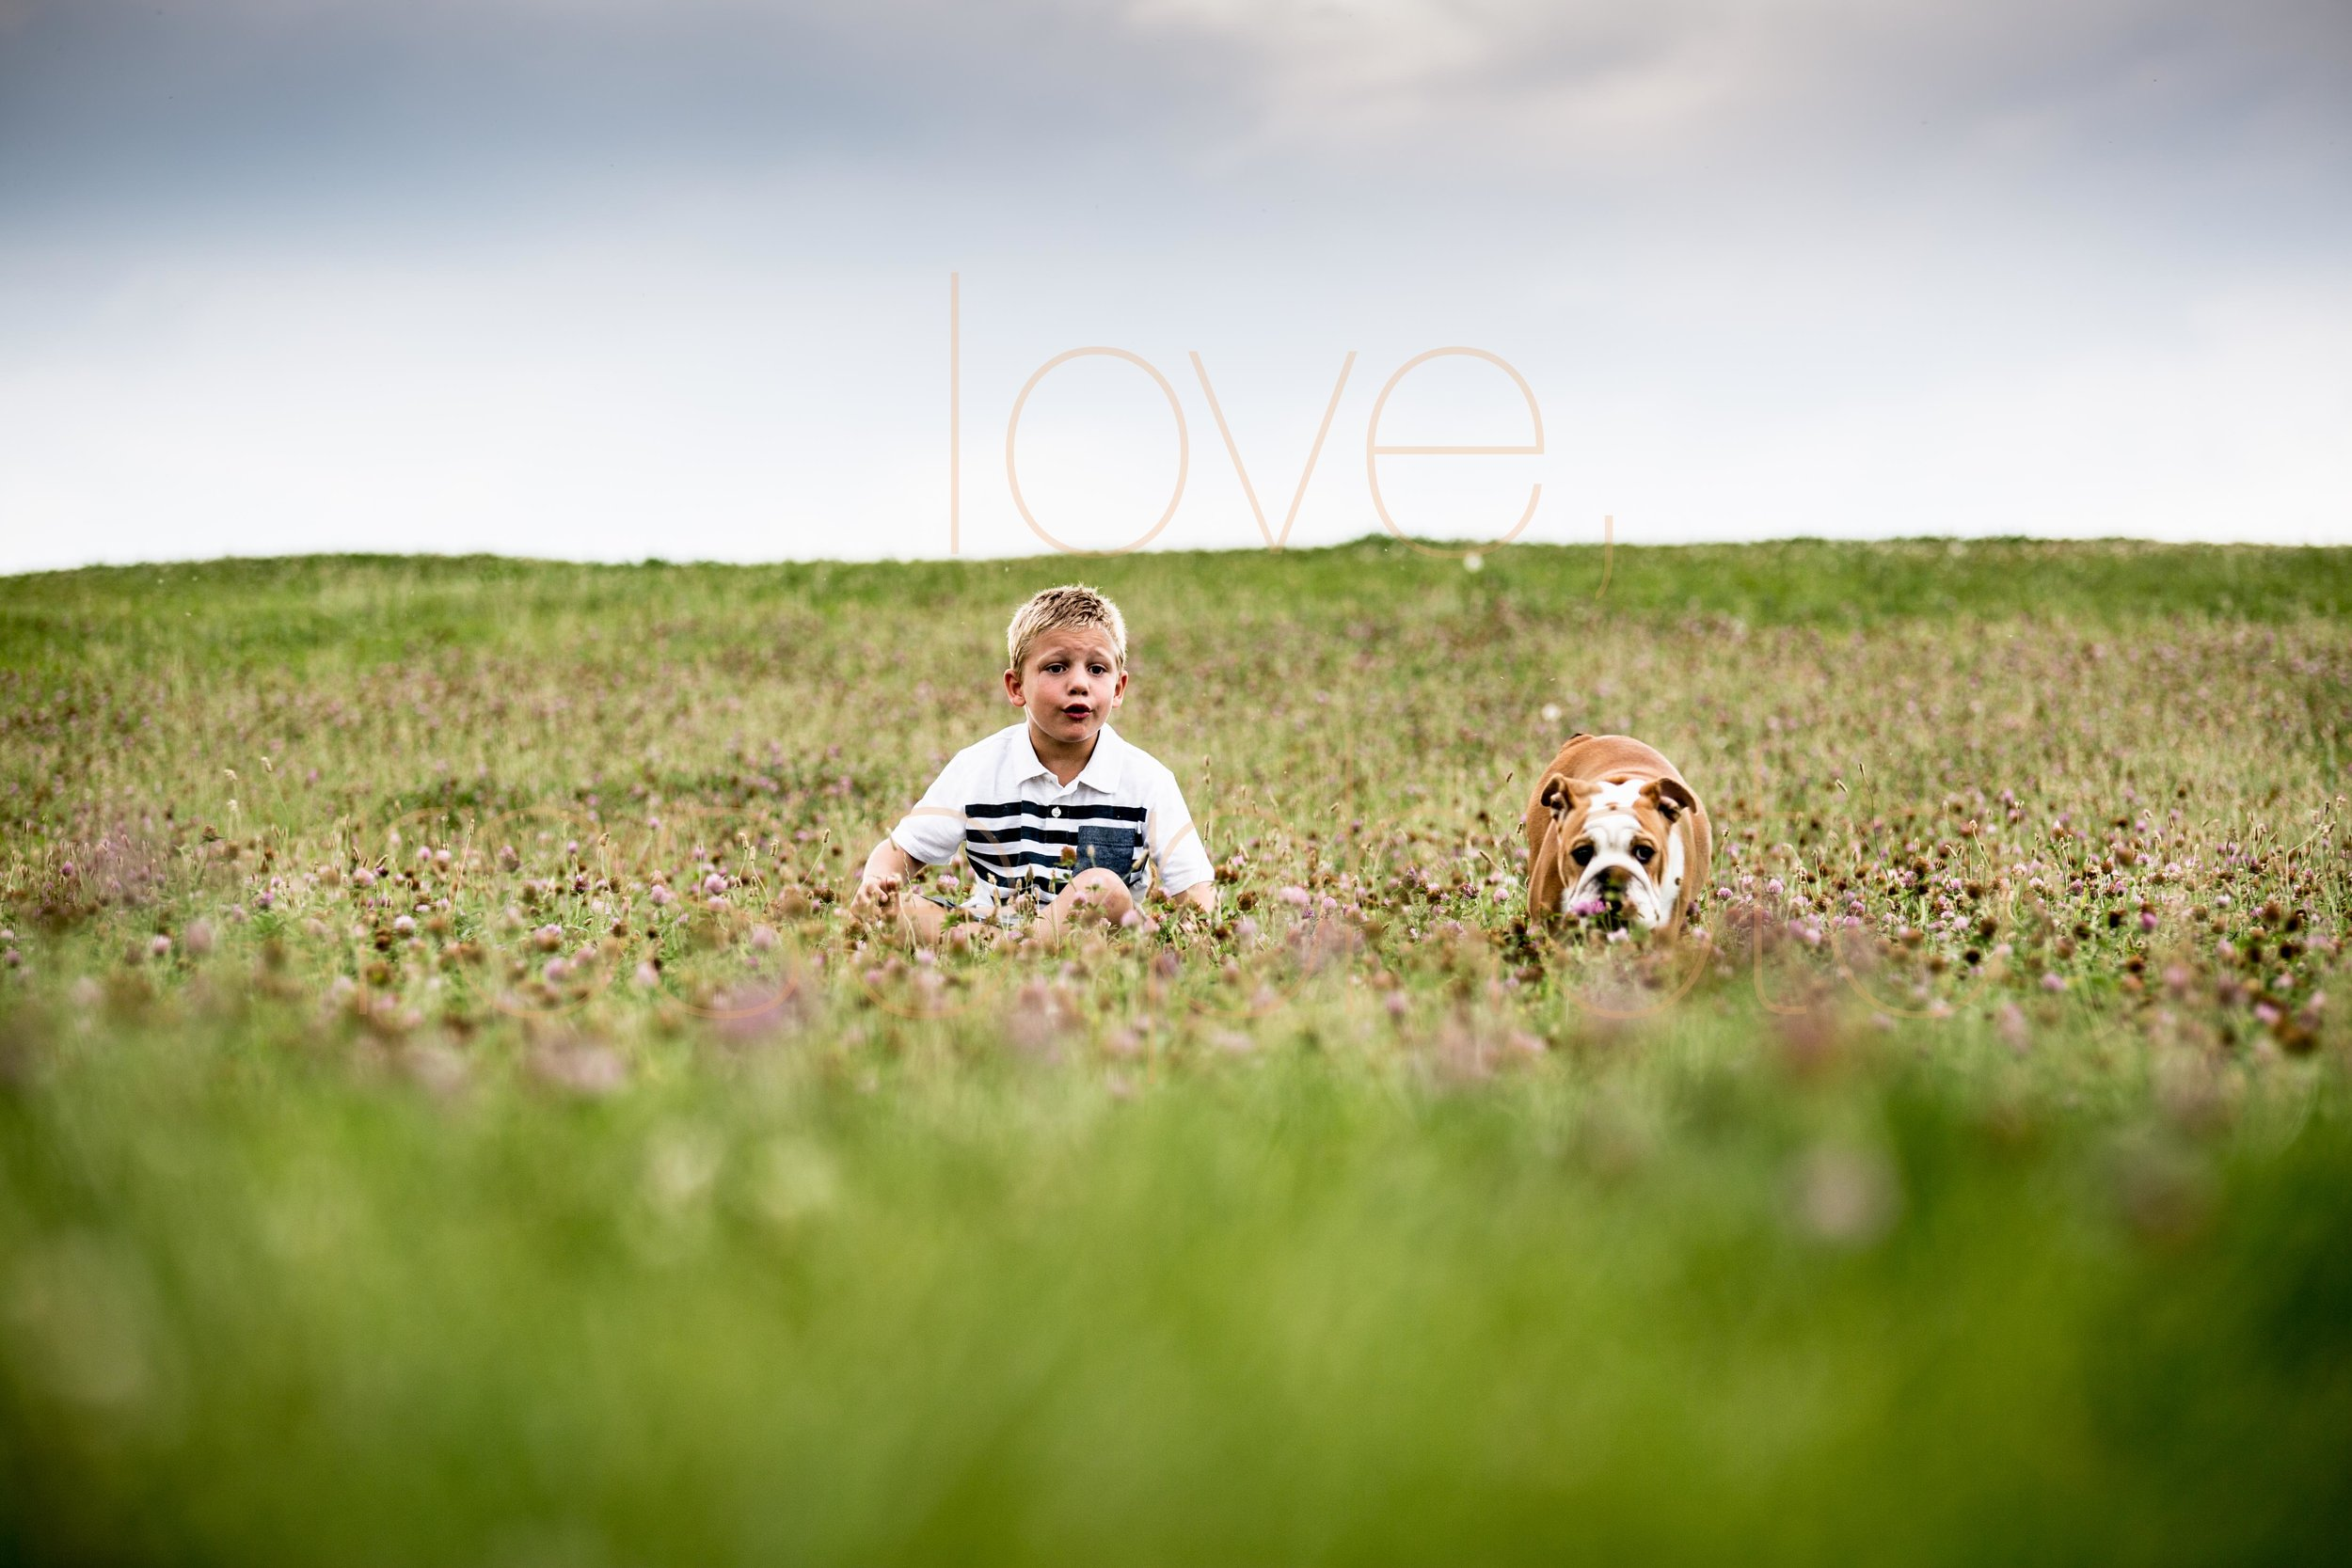 family picutres  lifestyle photos chicago kids photographer-5.jpg